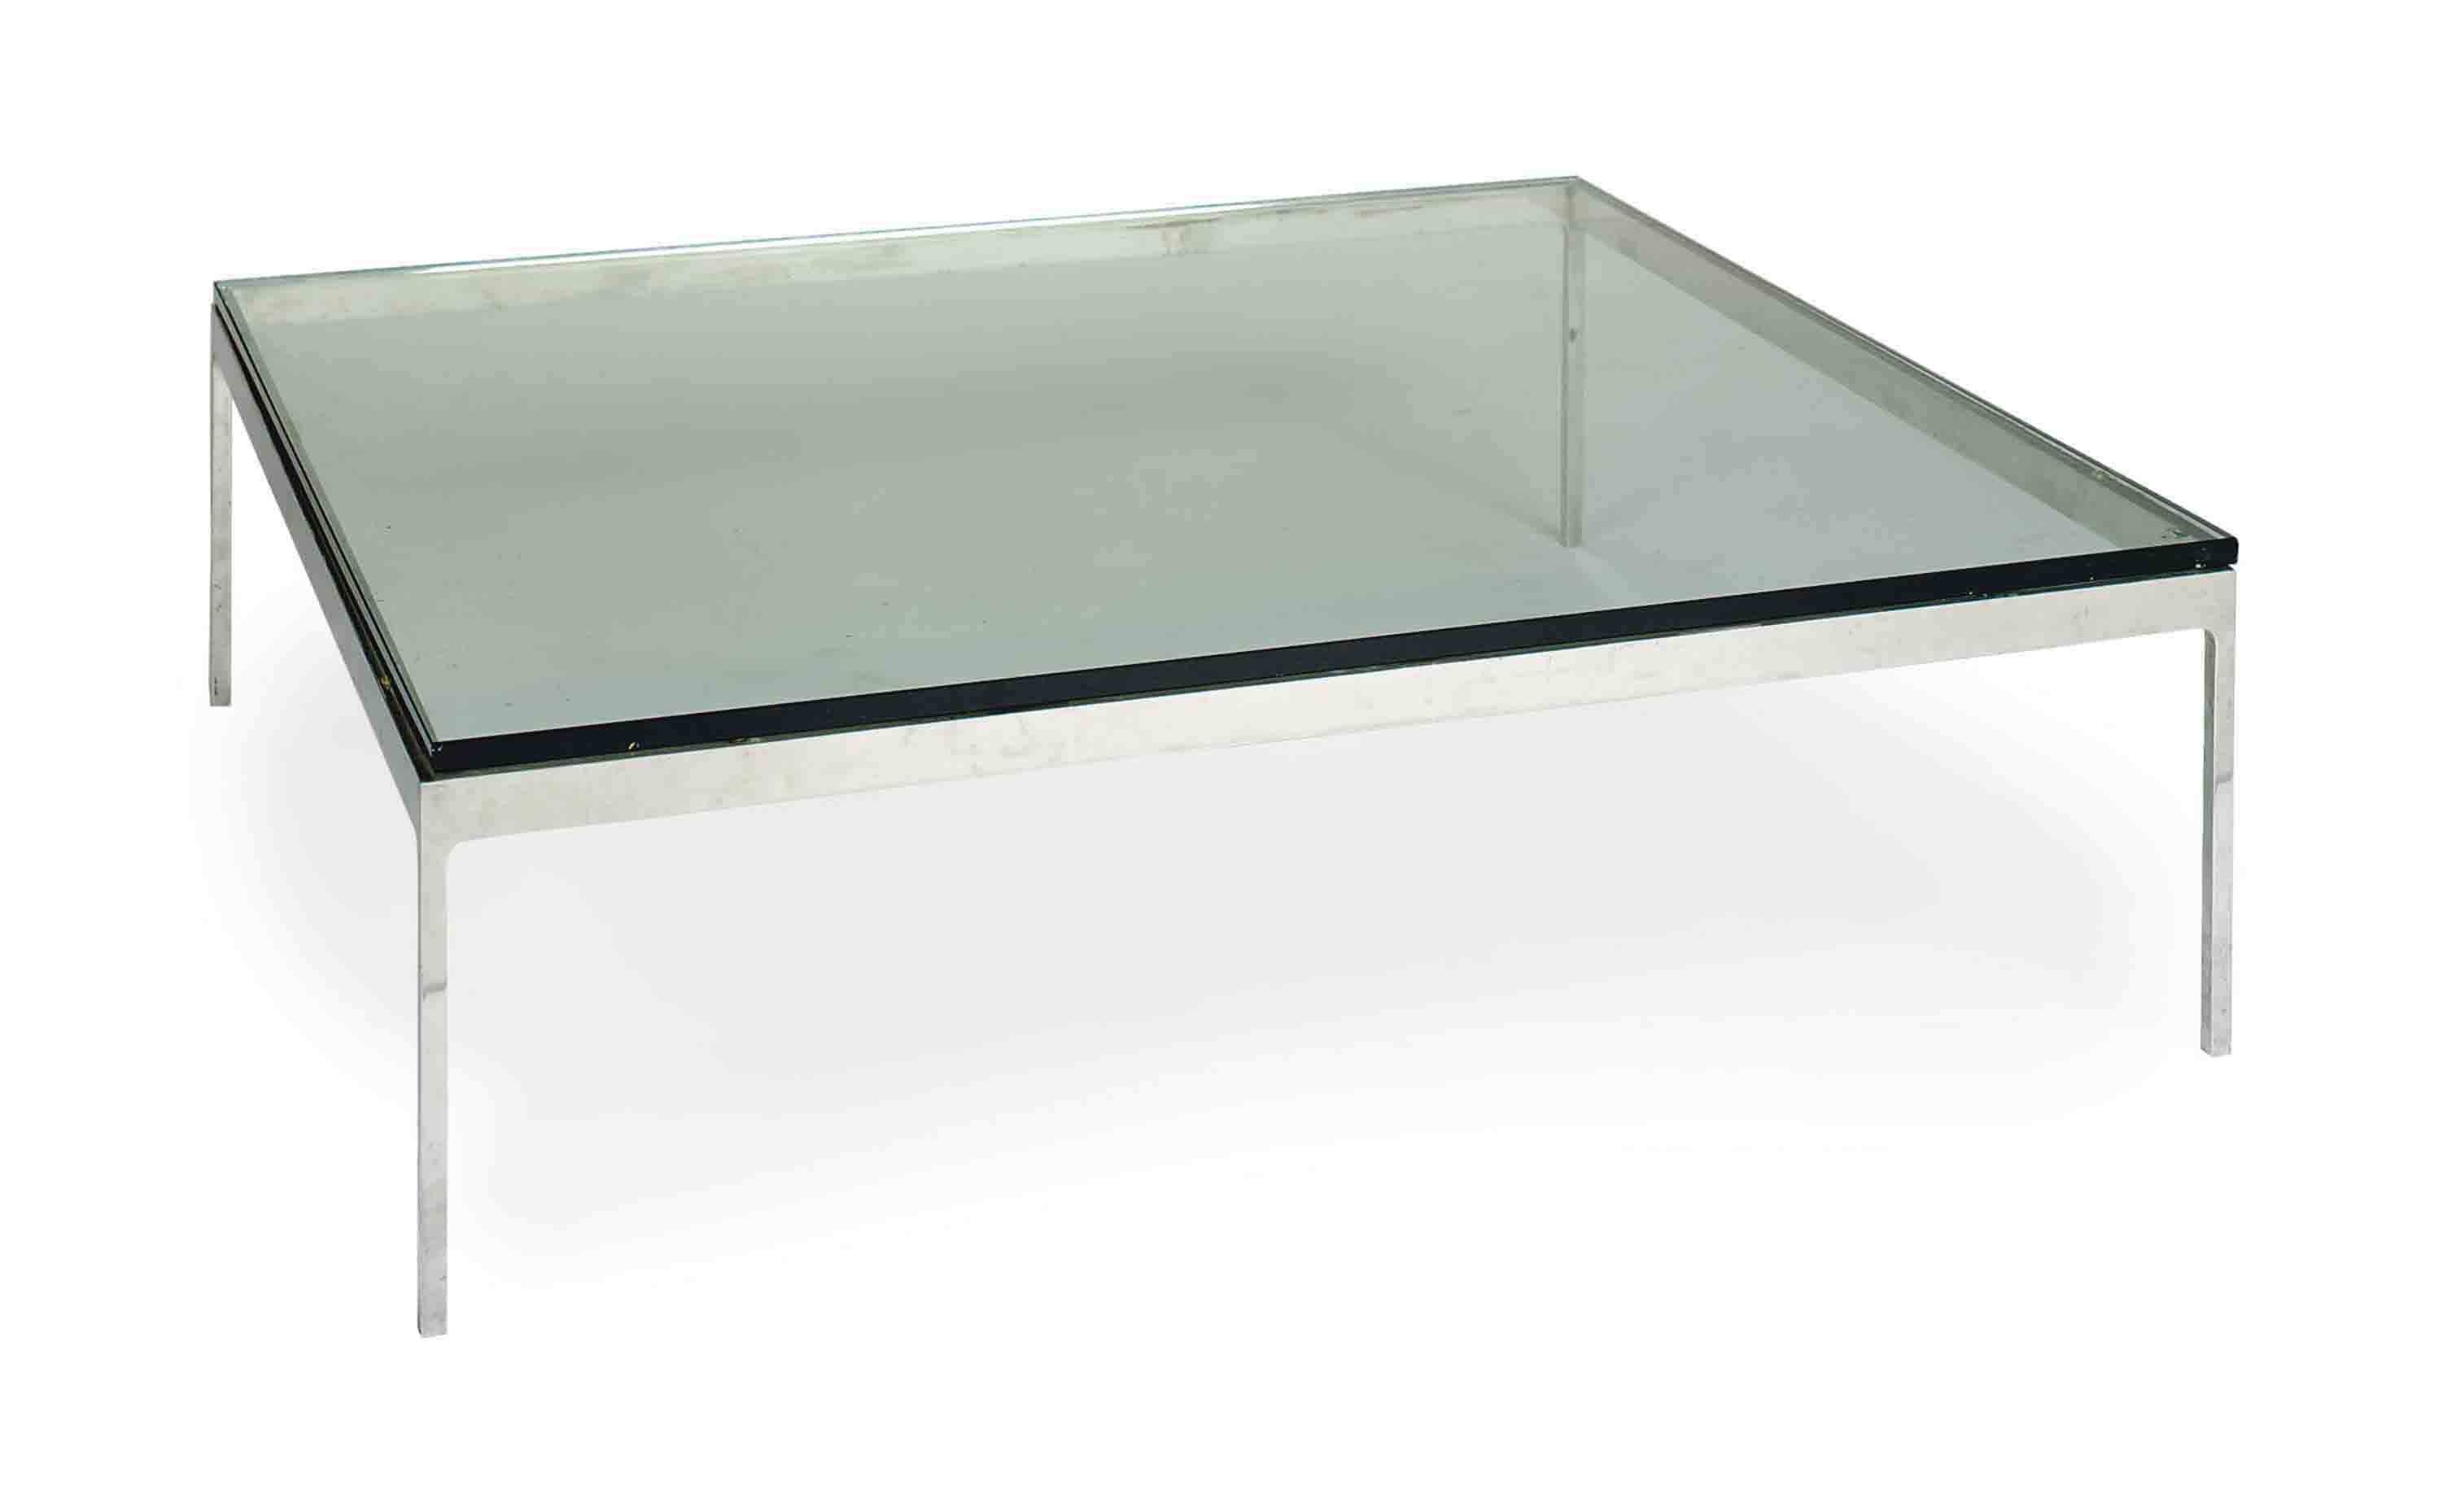 A CHROMED-METAL AND GLASS SQUARE LOW TABLE,